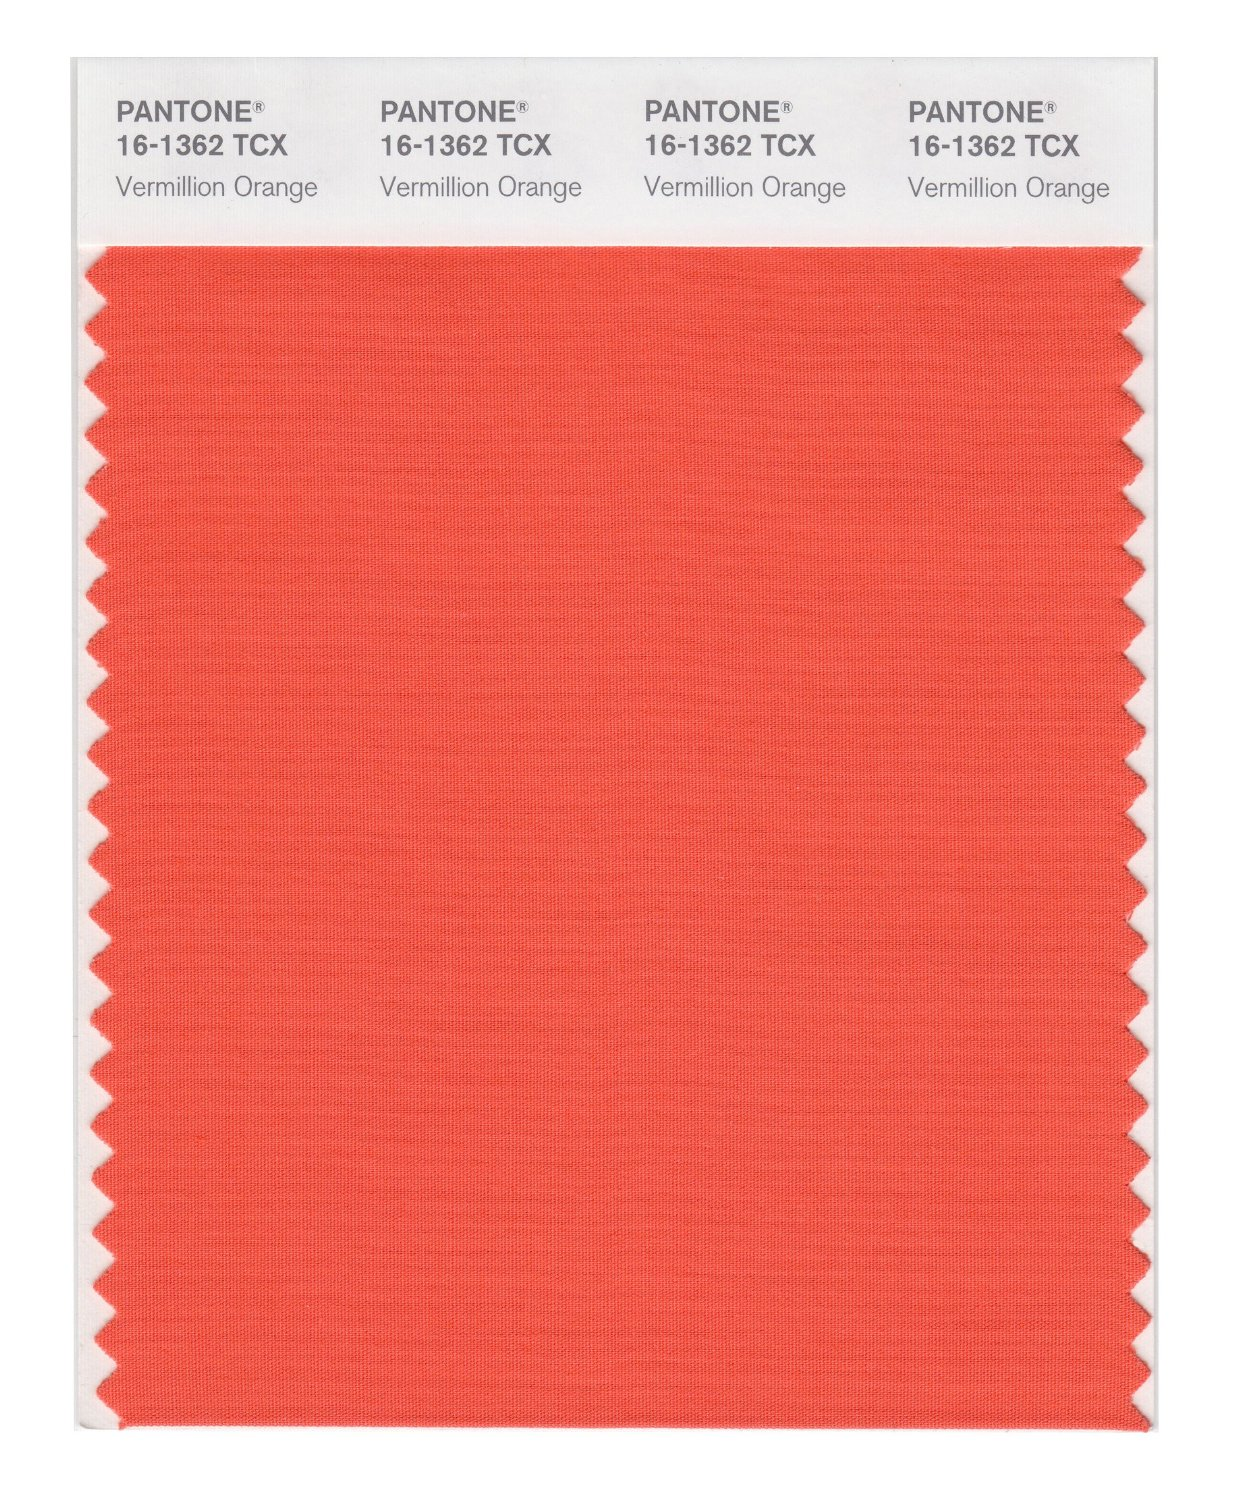 Pantone Smart Swatch 16-1362 Verm Orange